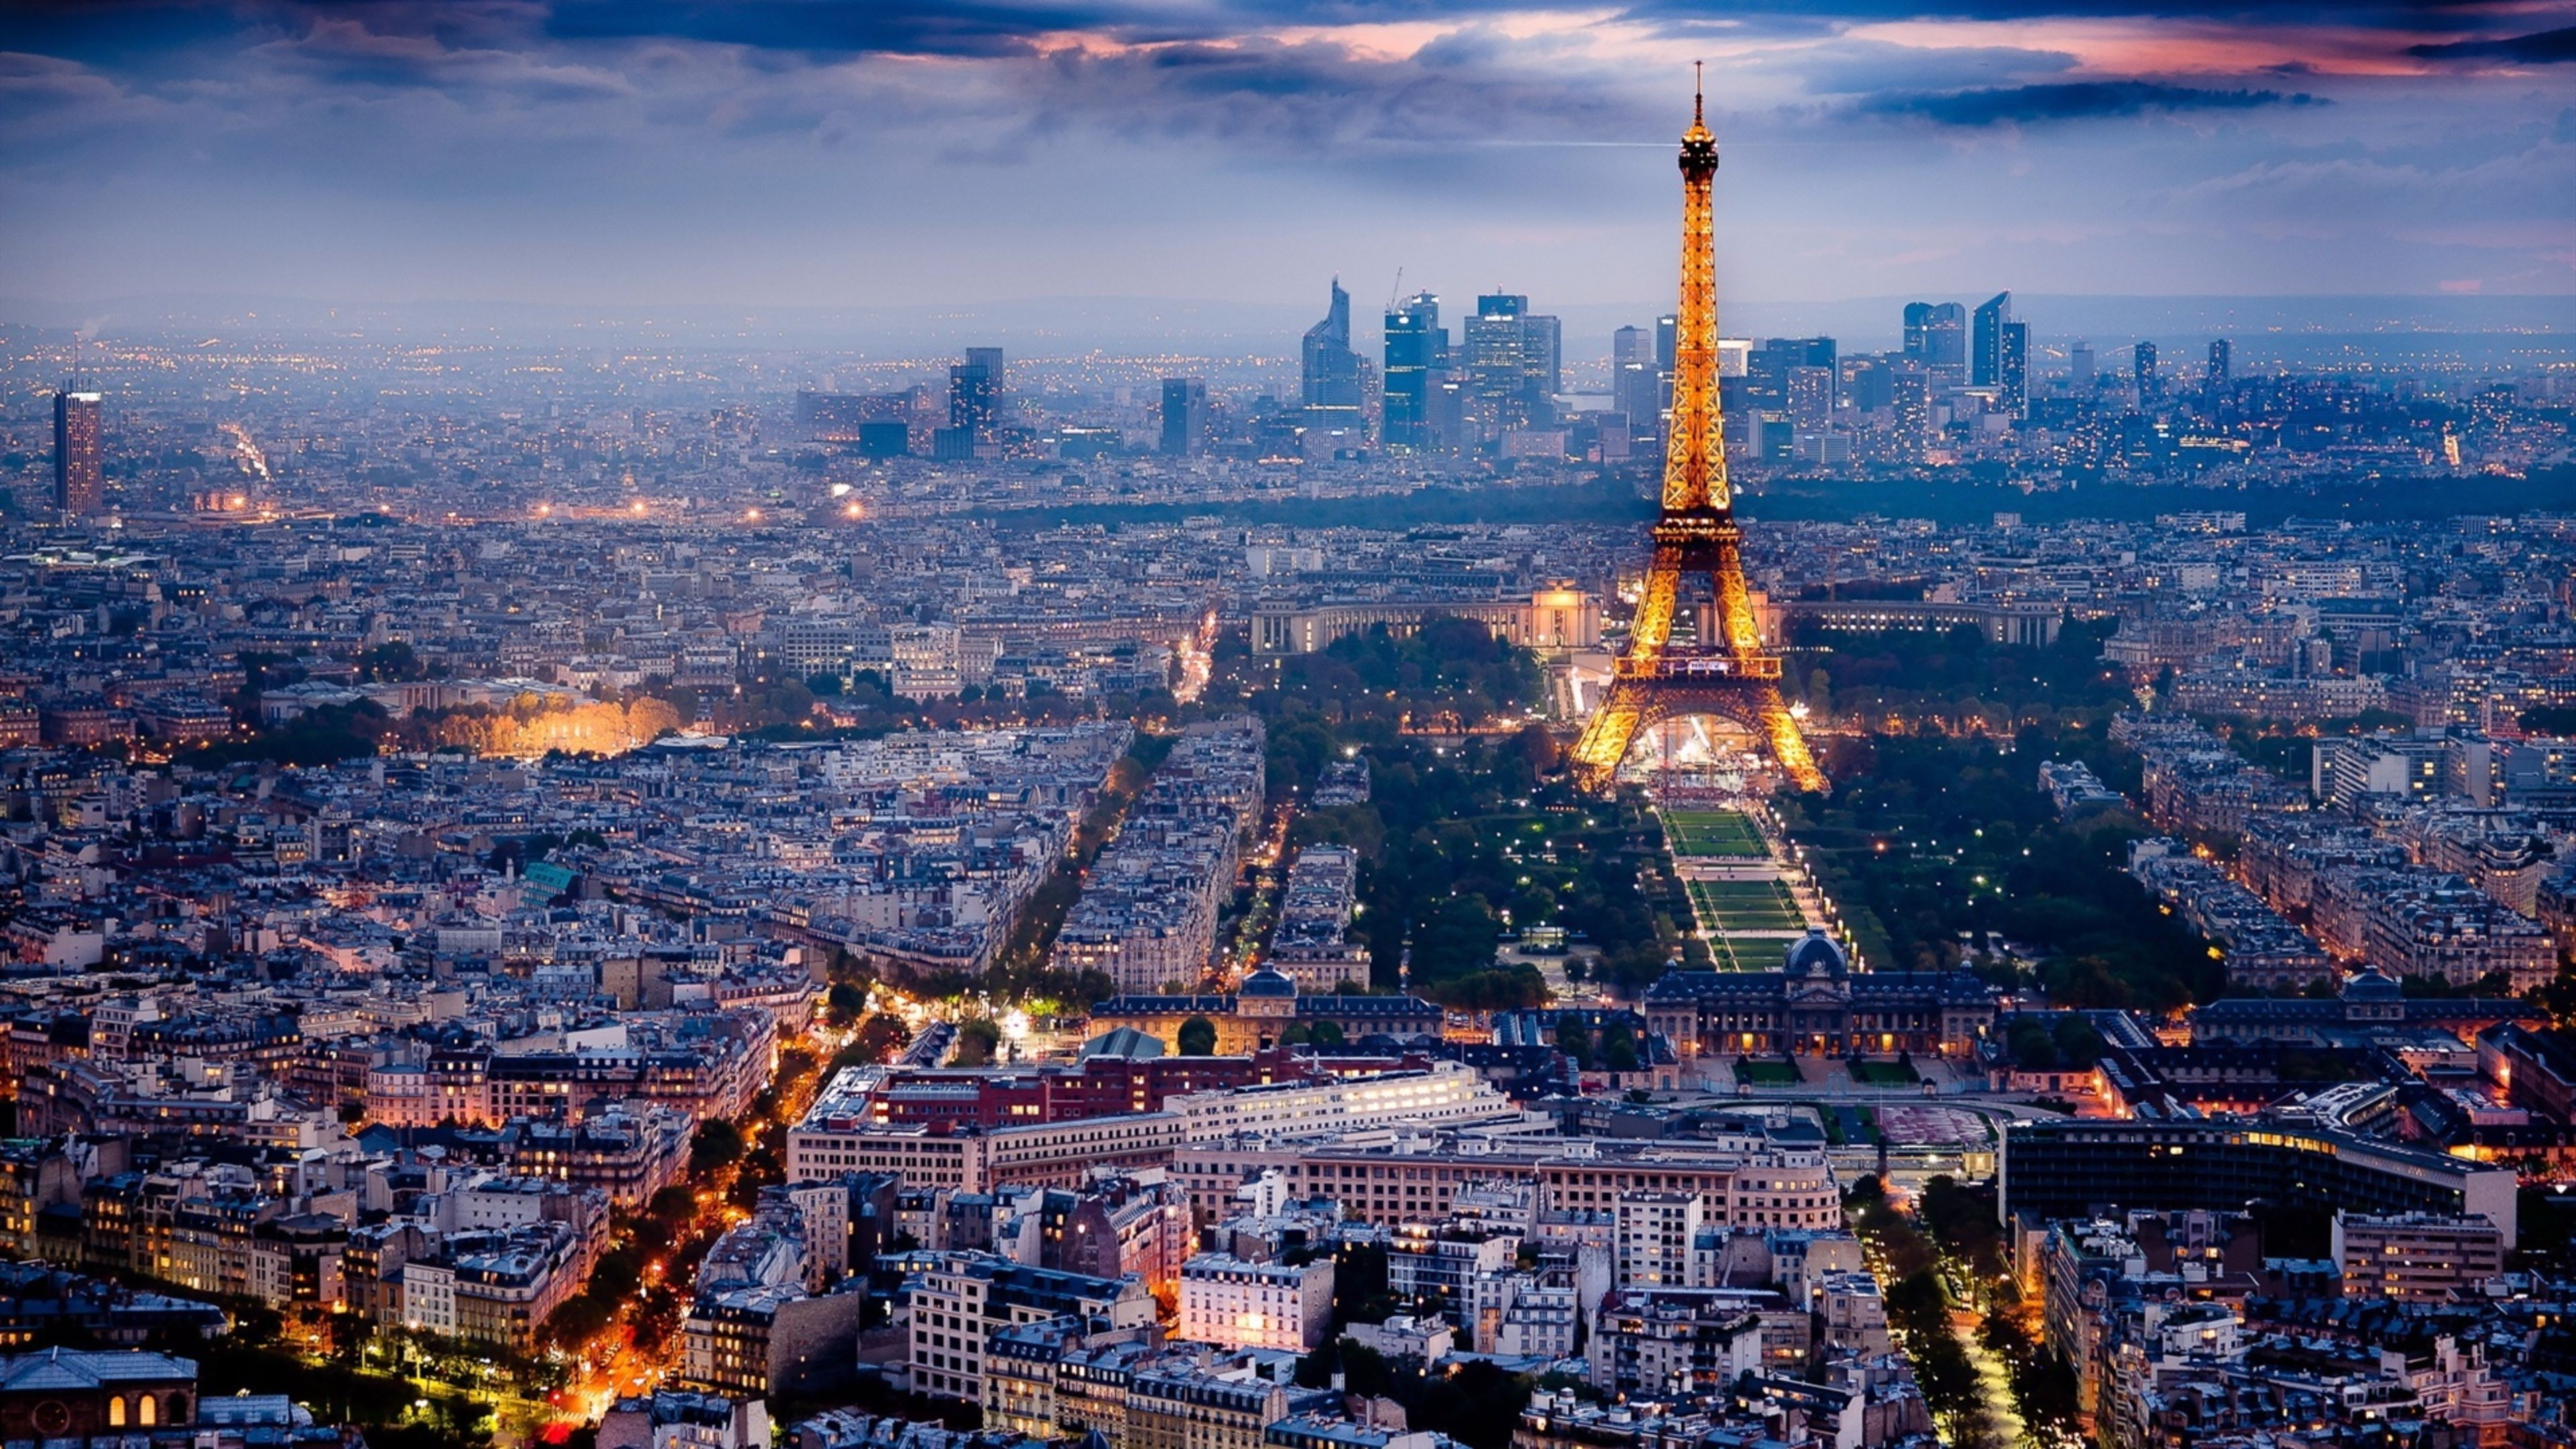 Paris 4k Wallpapers For Your Desktop Or Mobile Screen Free And Easy To Download